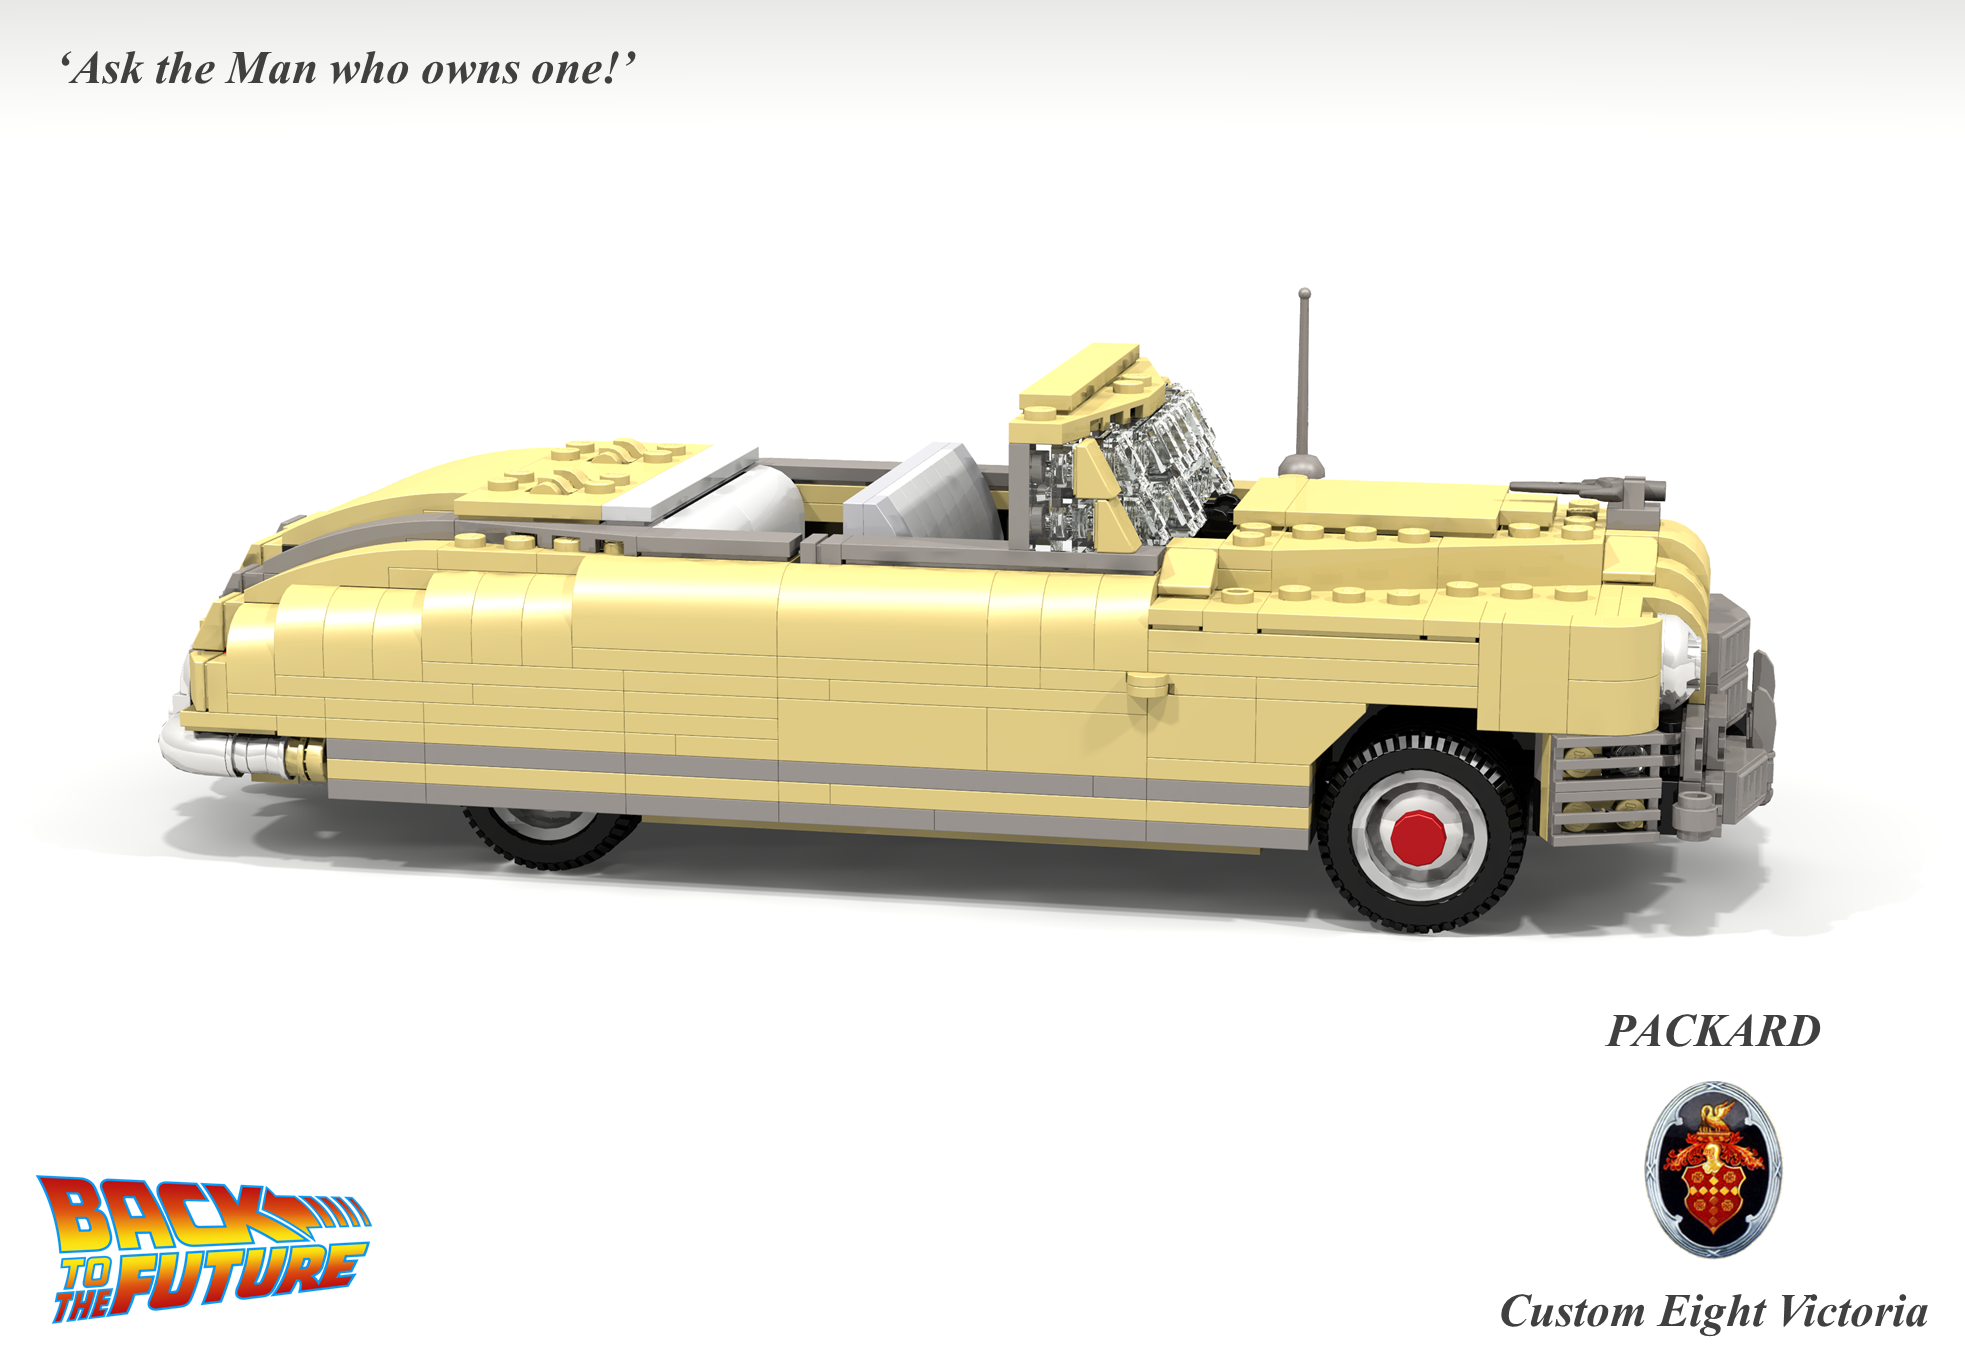 packard_custom_eight_victoria_-_bttf_09.png